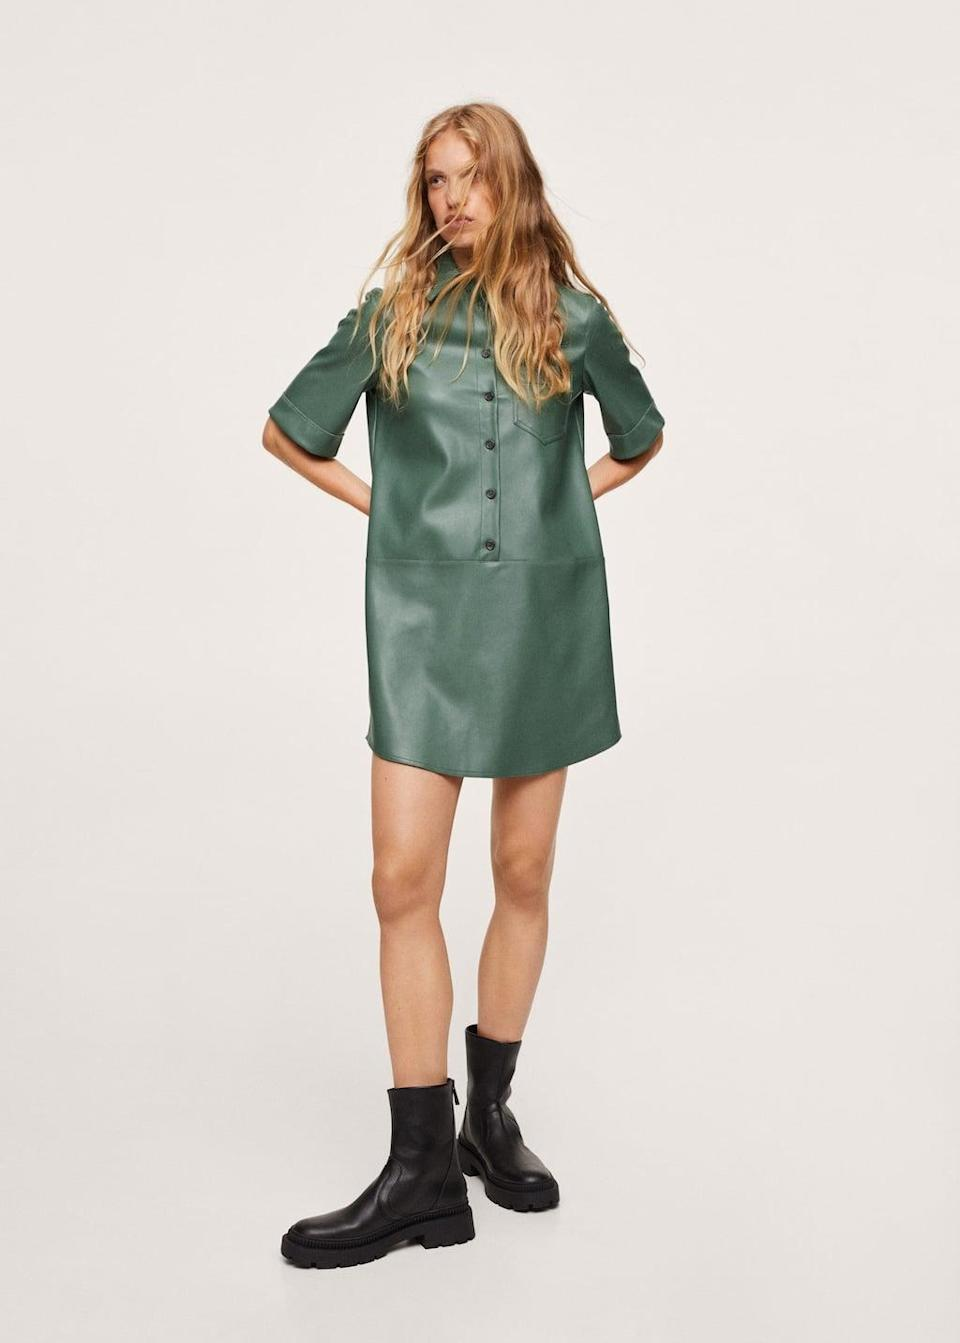 <p>Tap into the colorful leather trend with this edgy <span>Mango Faux Leather Shirt Dress</span> ($80). It's so effortlessly cool and polished, and you'll get lots of compliments on it.</p>